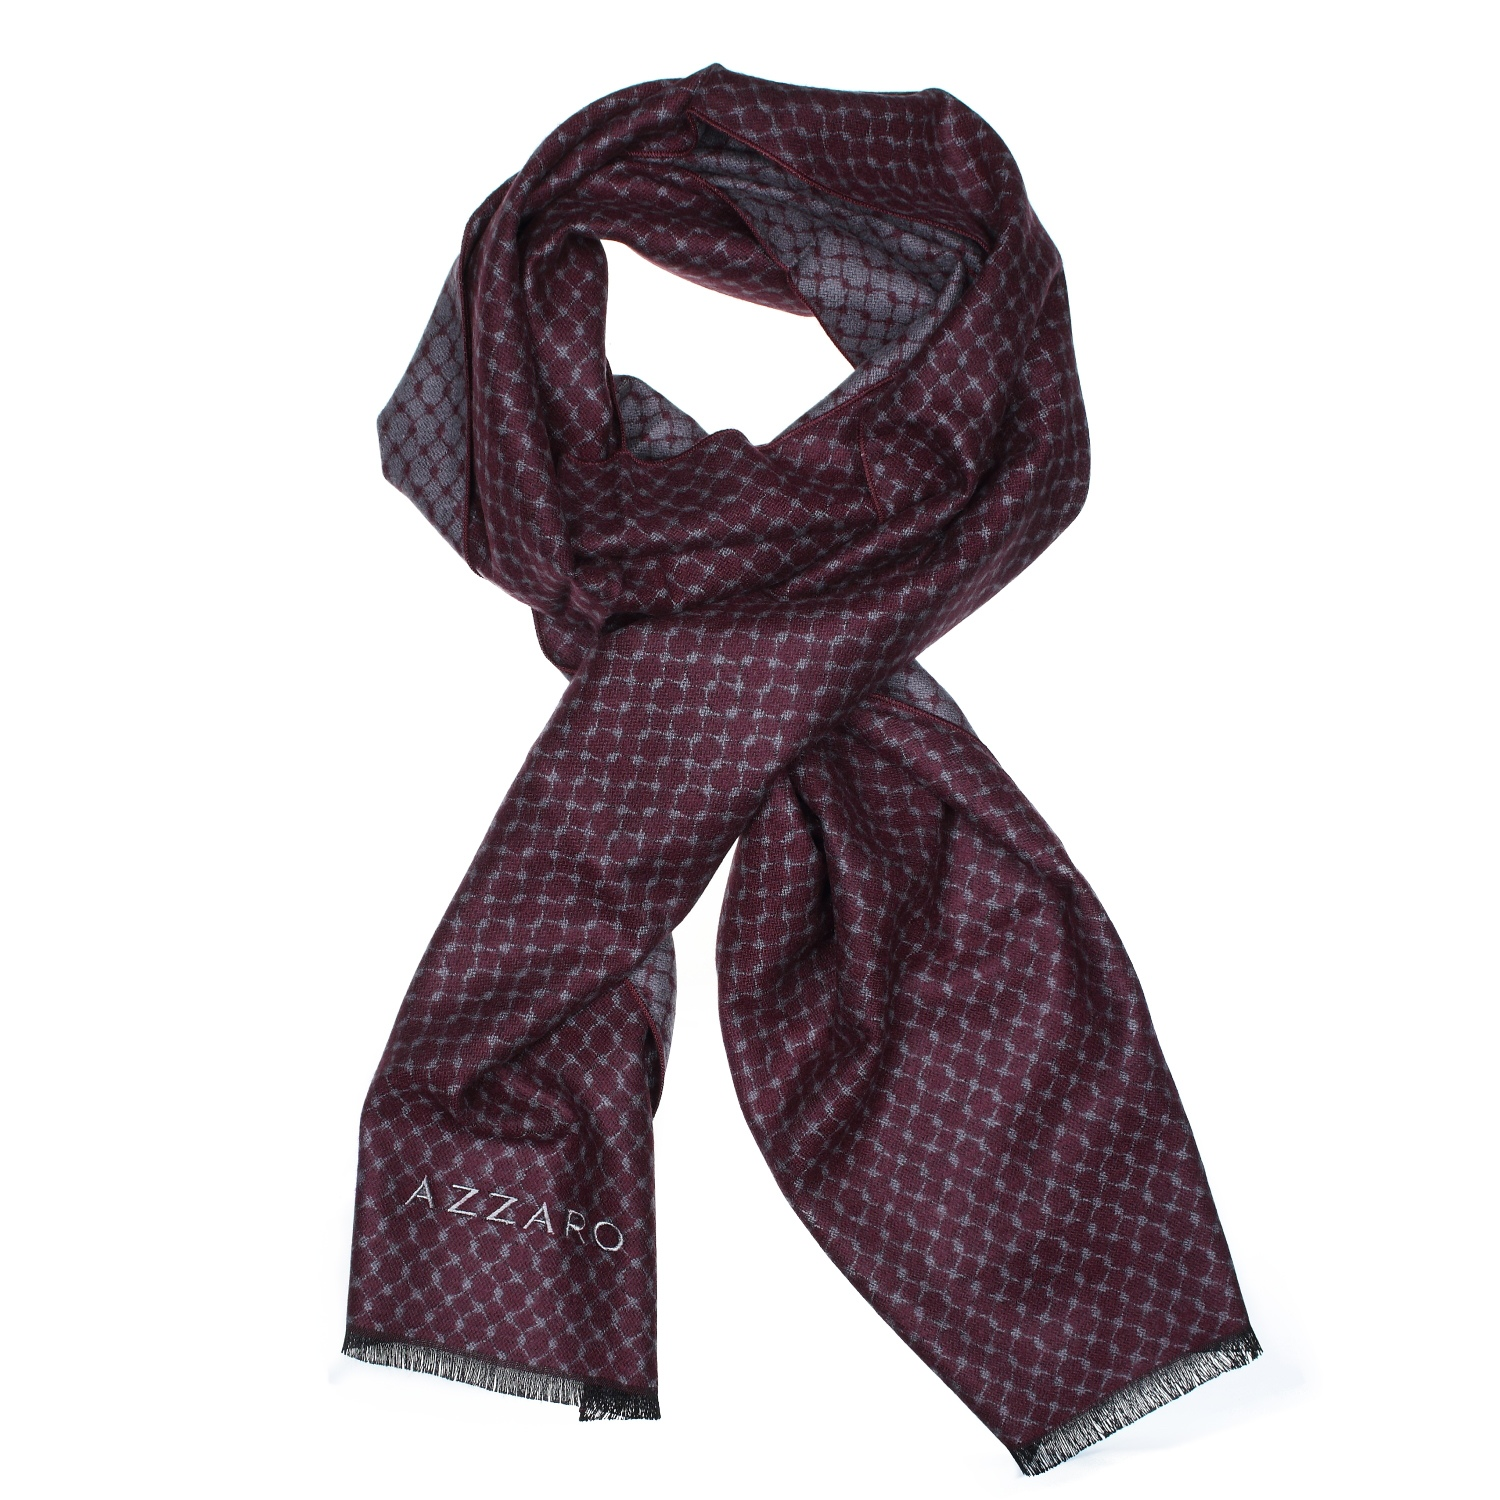 https://www.leadermode.com/184168/azzaro-foulard-motif-2-bordeaux.jpg